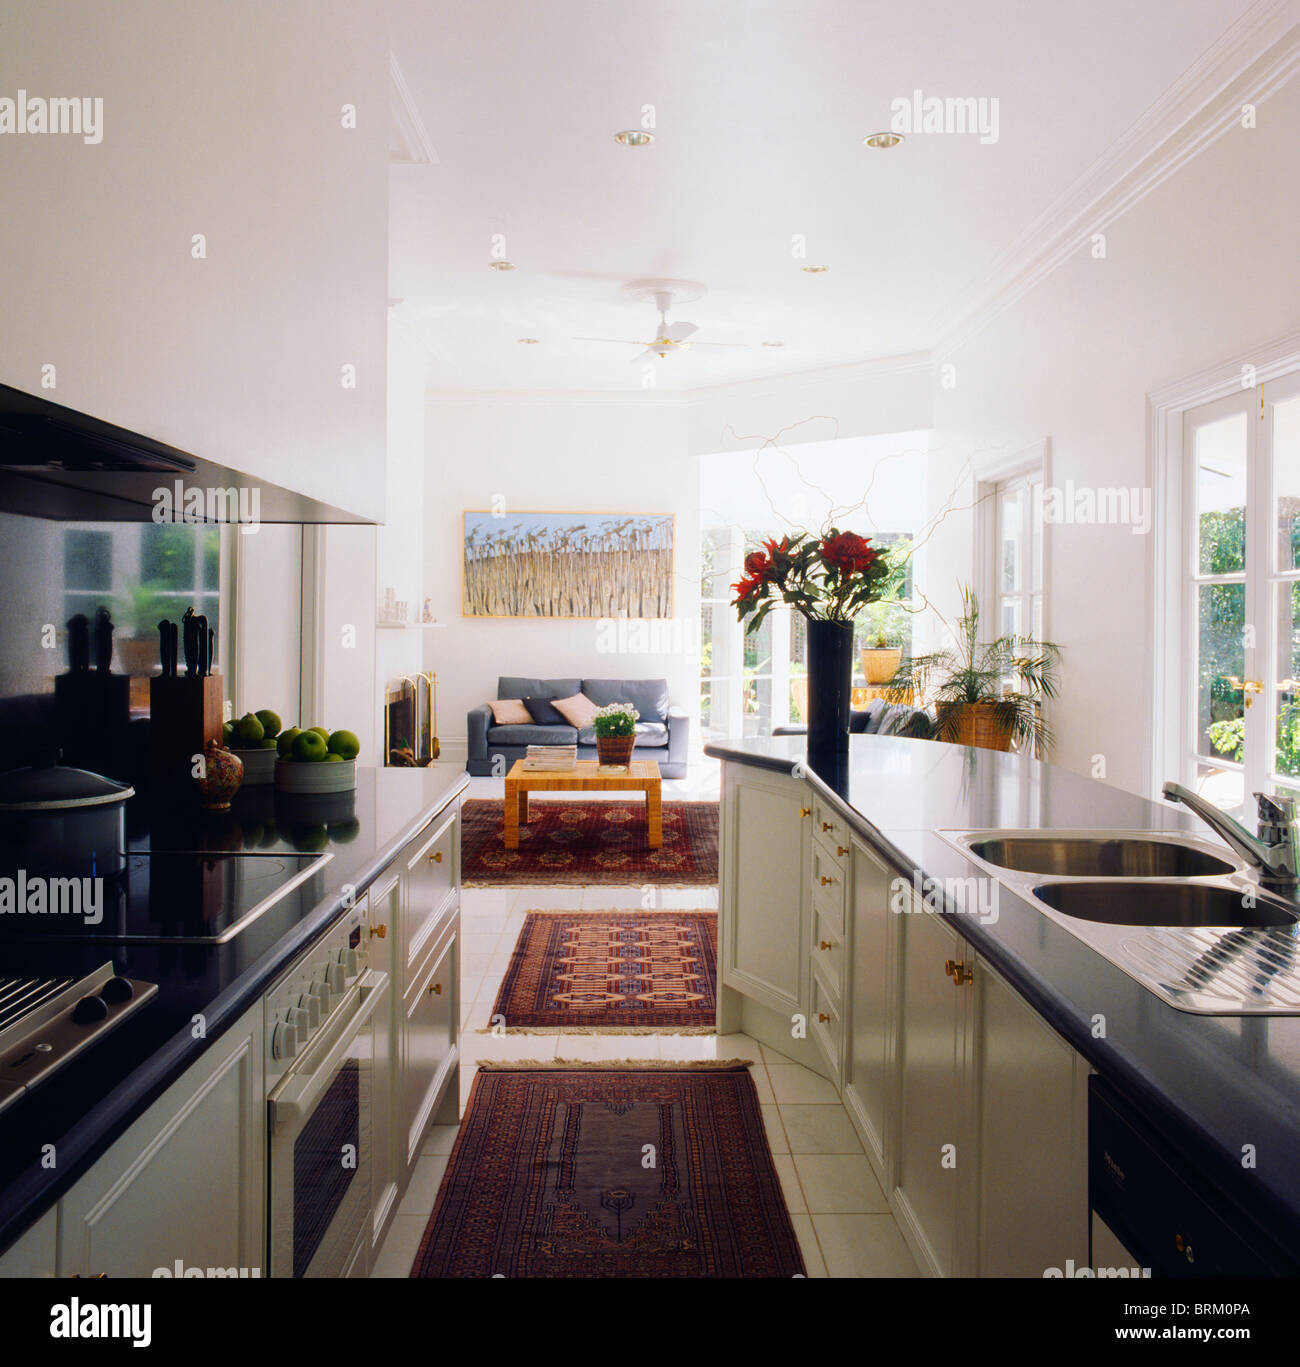 Rugs On Floor In Open Plan White Galley Kitchen With Black Worktops Stock Photo 31787122 Alamy